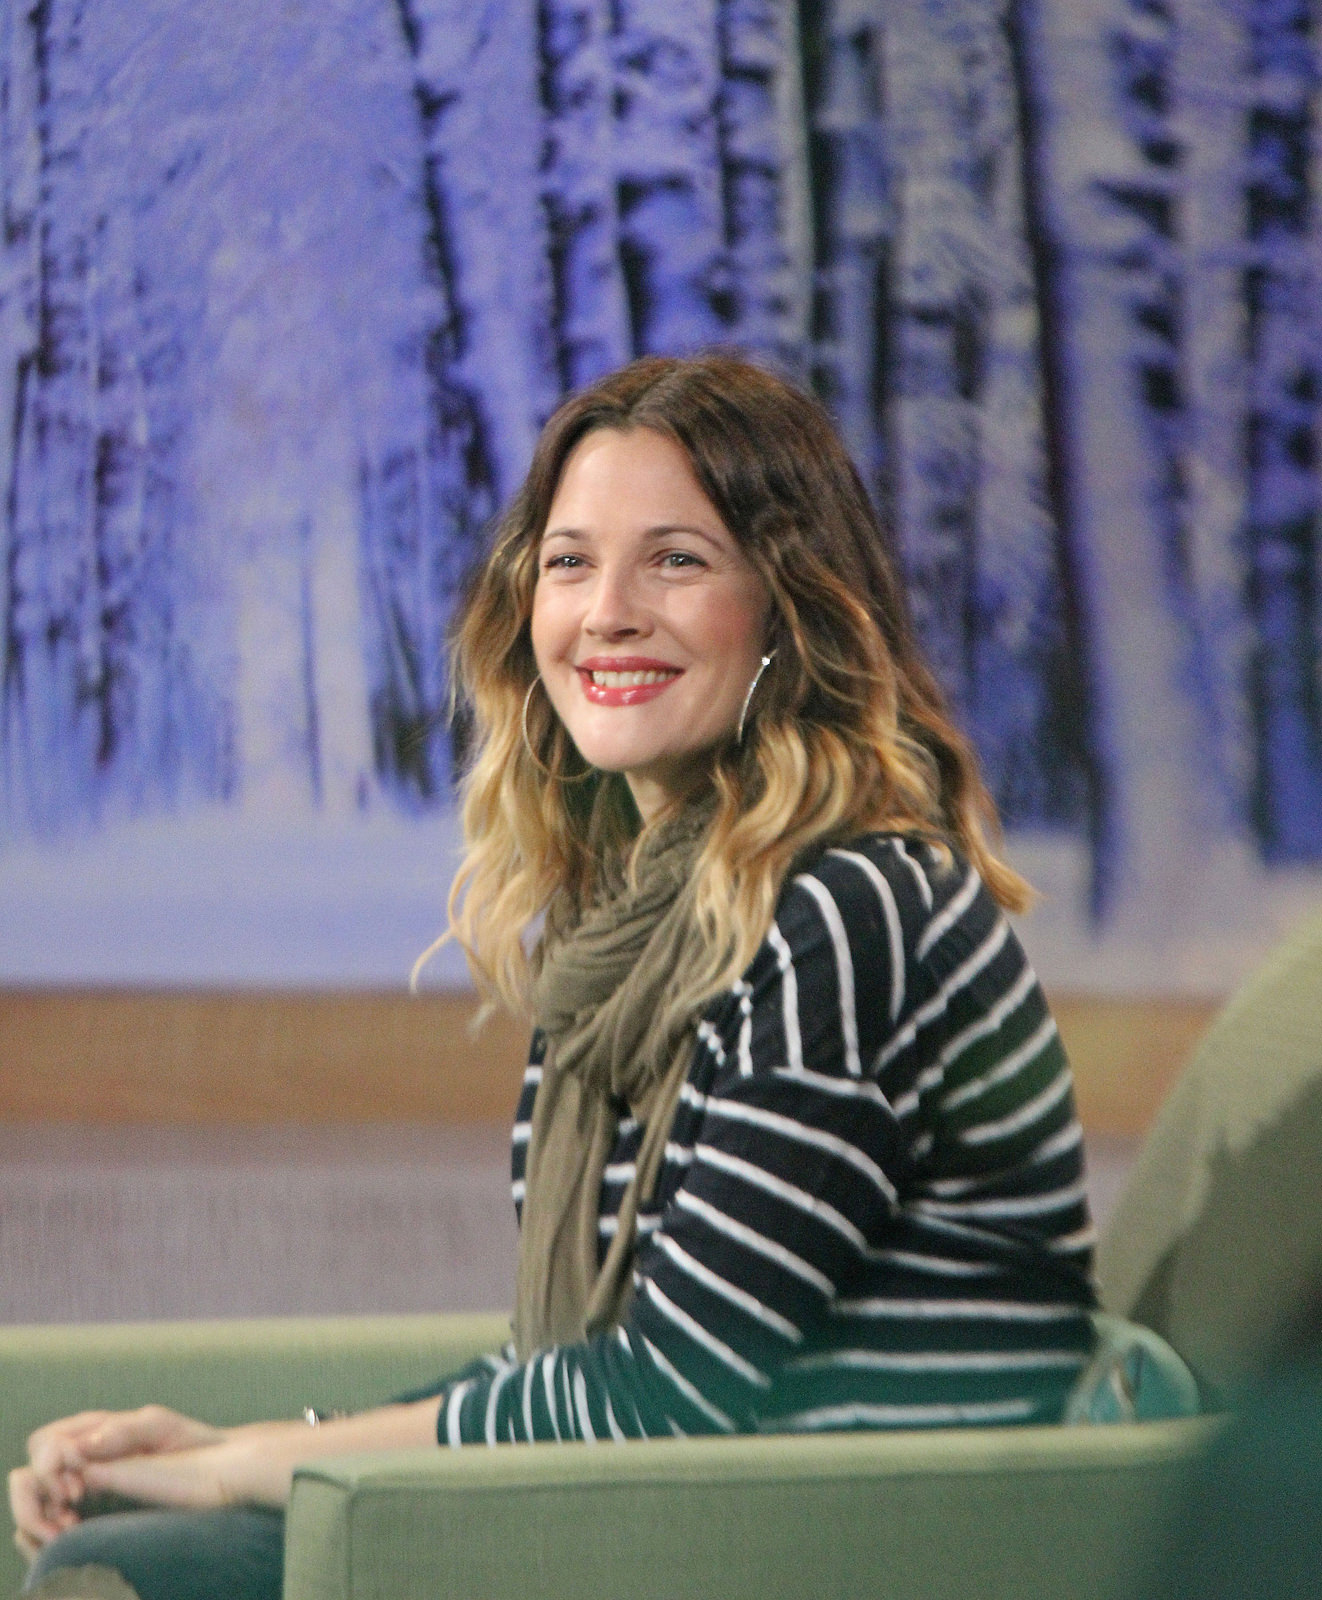 Drew Barrymore Photo Gallery